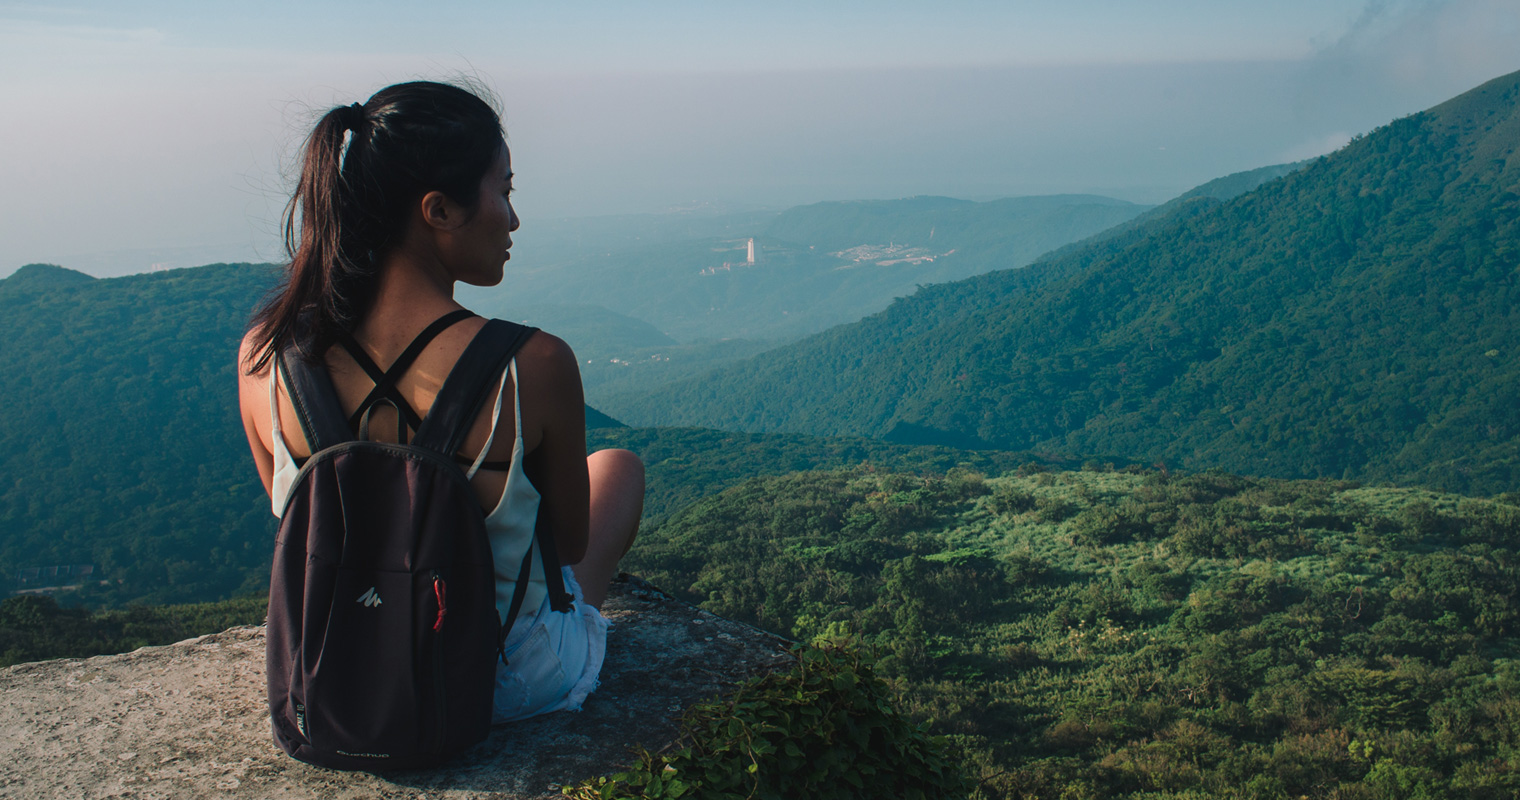 Girl at lookout point in Asia